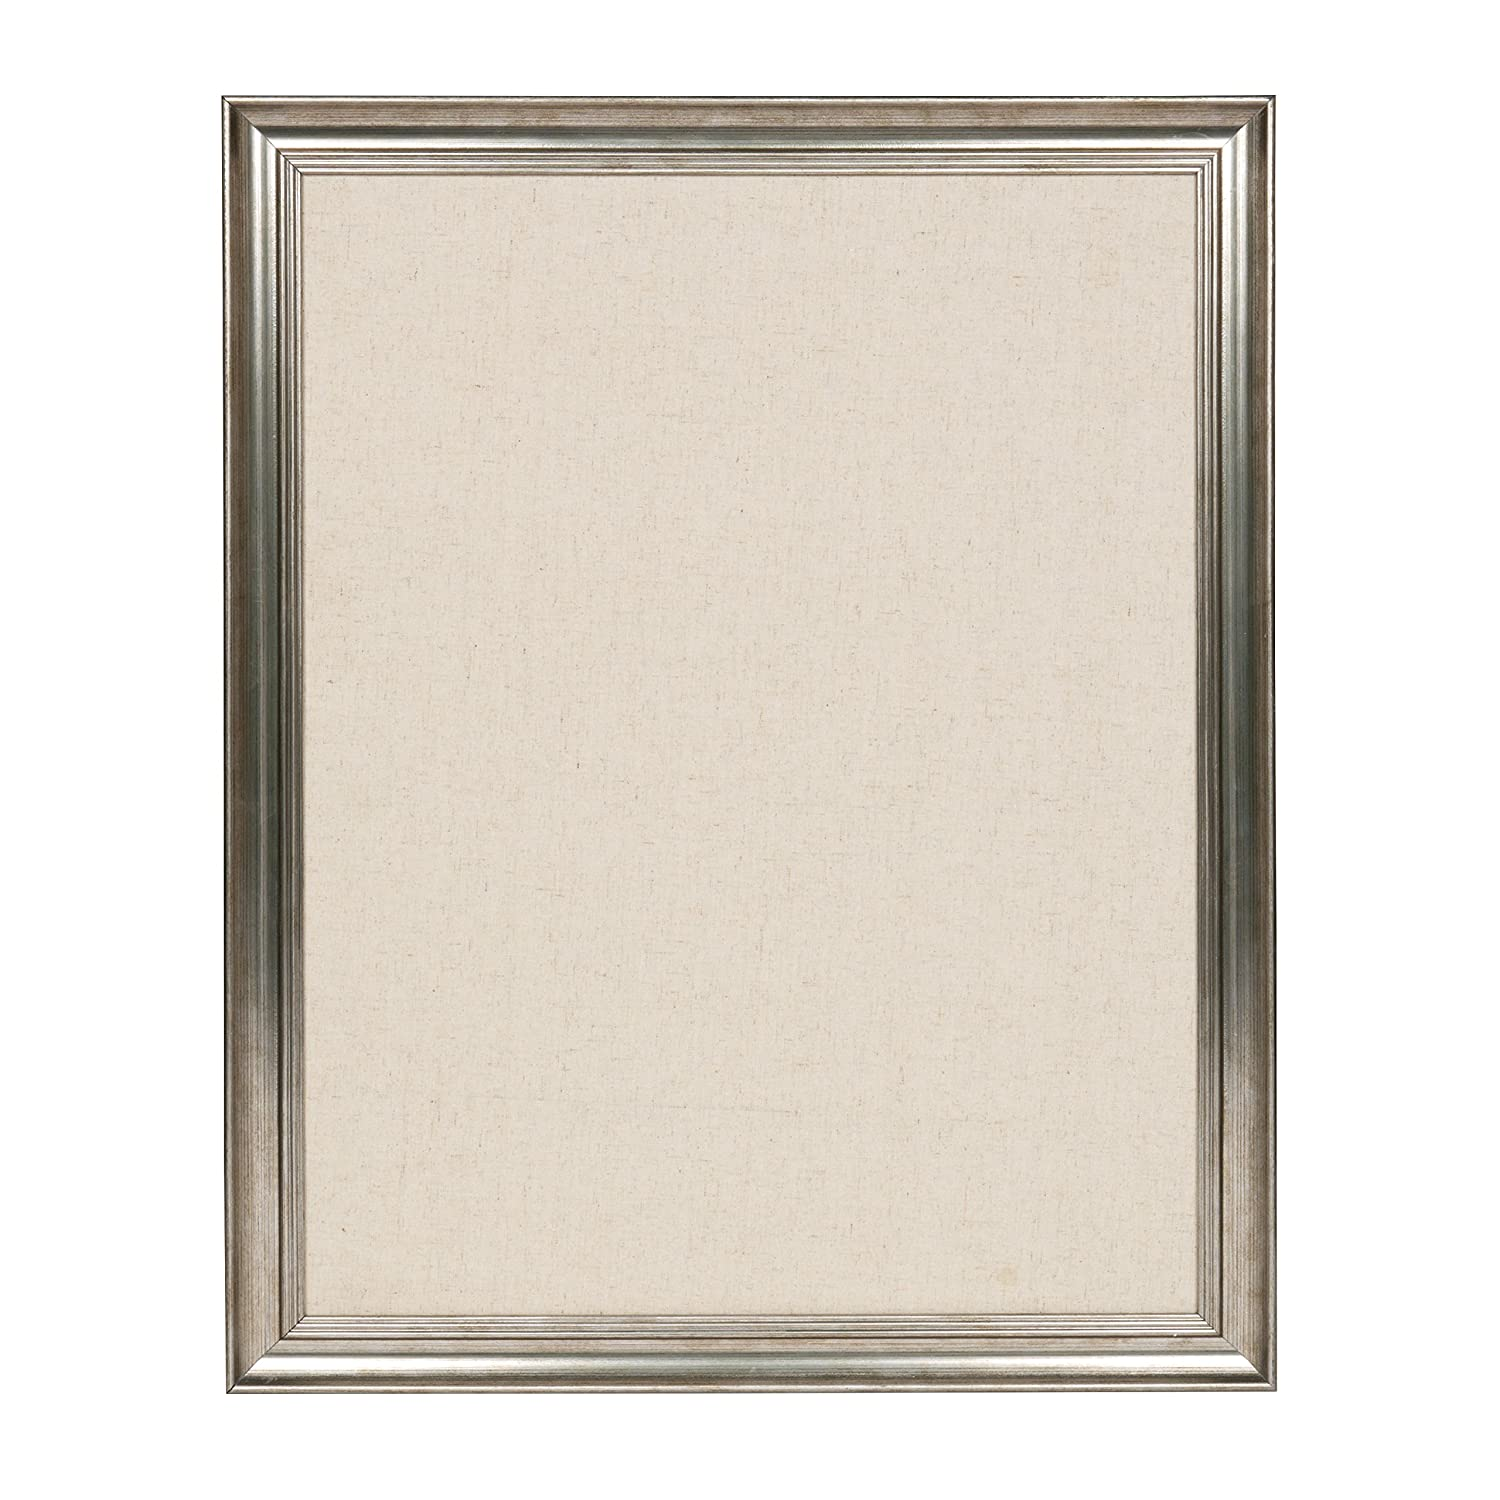 DesignOvation Macon Framed Linen Fabric Pinboard, 18x27, Pewter Uniek 211671